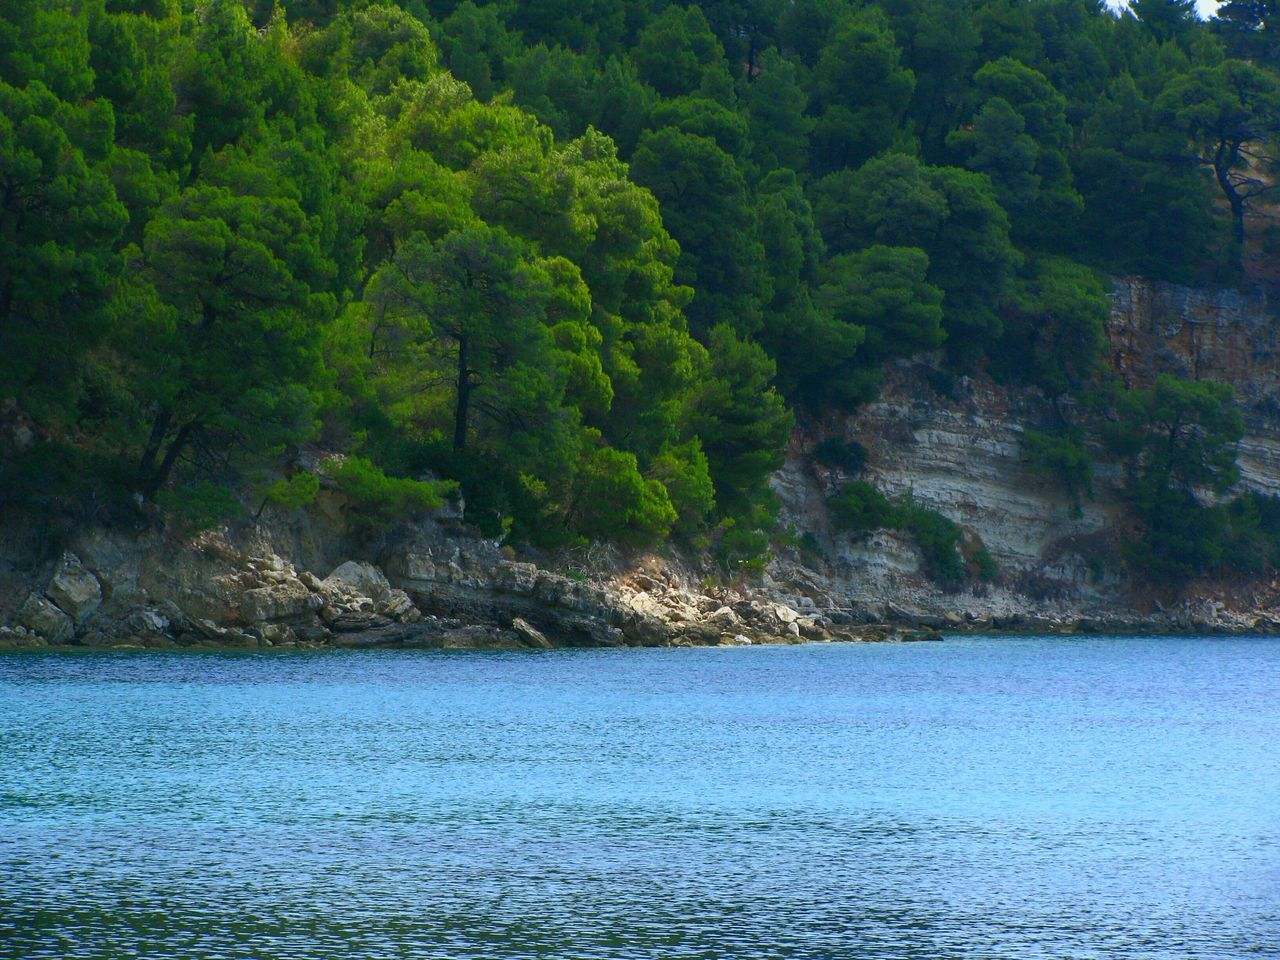 Pine Trees Nature Sea Cliff Rock Water Tree Scenics Beauty In Nature Tranquility Outdoors Tranquil Scene Green Color Landscape Landscapes Crystal Clear Waters Trees And Sea Greek Islands Blue Sea Cliff And Sea On A Boat